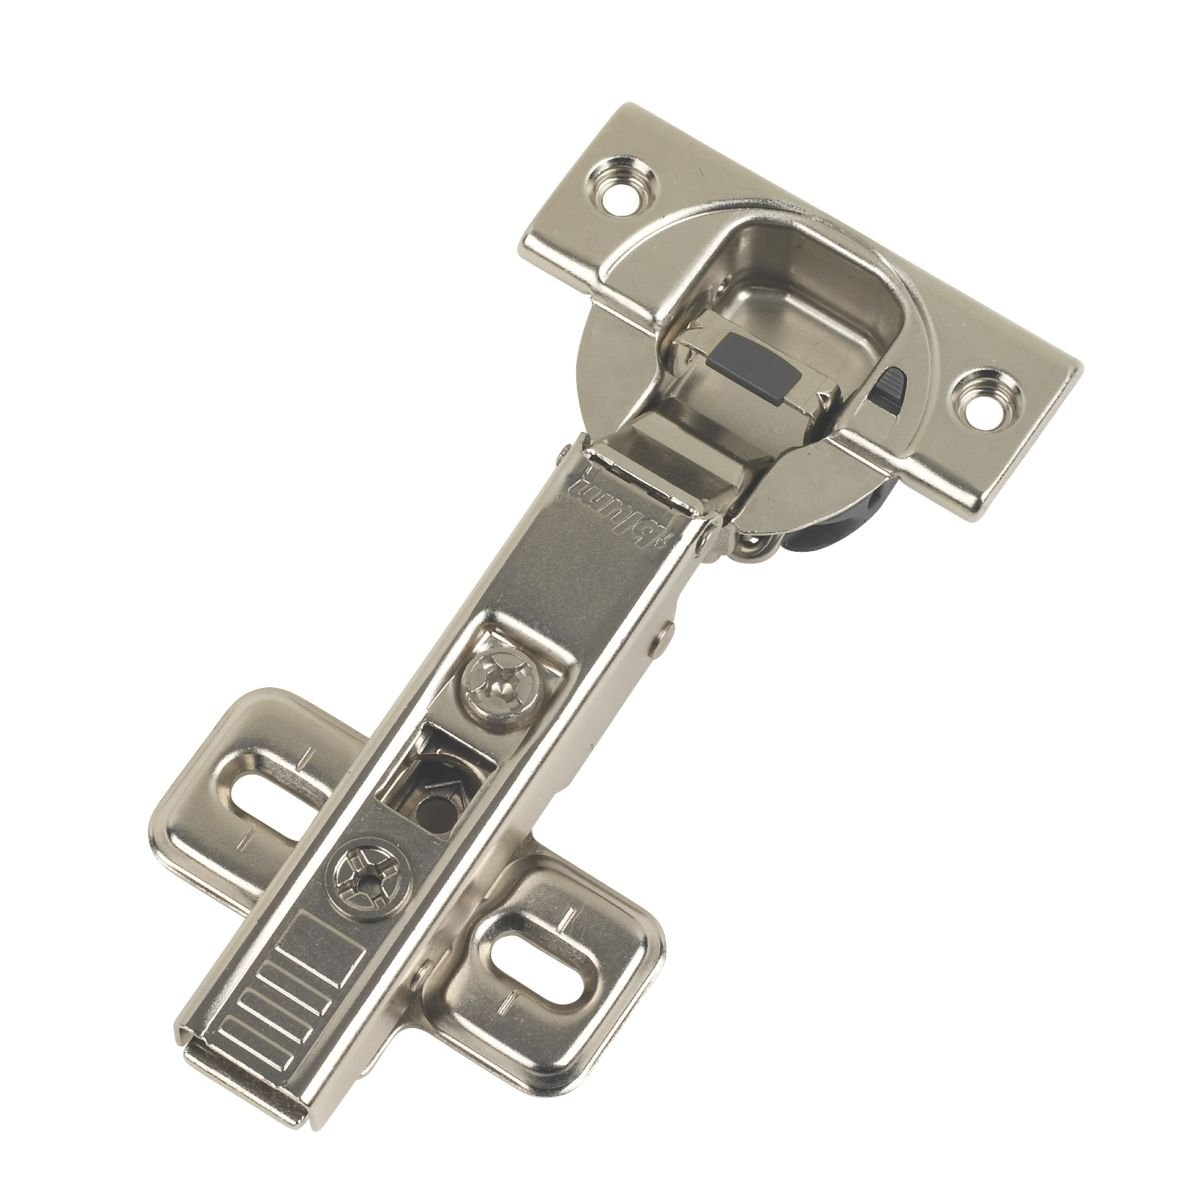 Blum Kitchen Cabinet Hinges Blum Blumotion Soft Close And T Bar Kitchen Cabinet Door Silencer